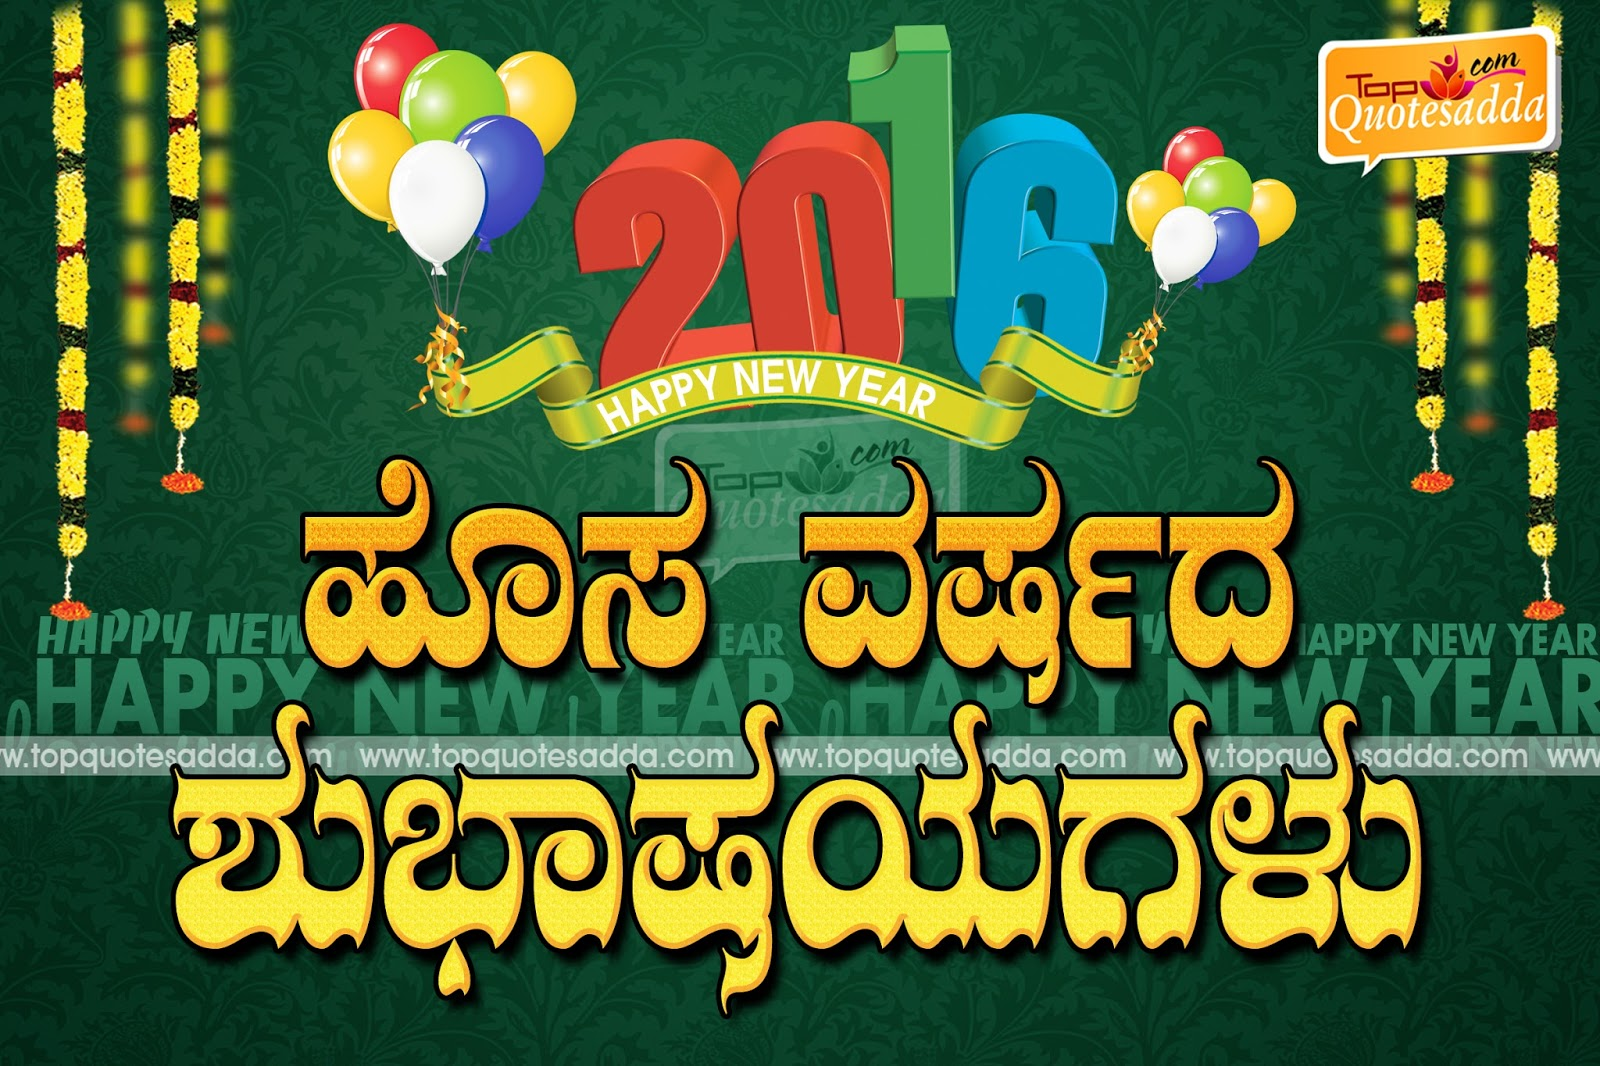 Kannada new year wishes merry christmas and happy new year 2018 kannada new year wishes kristyandbryce Image collections